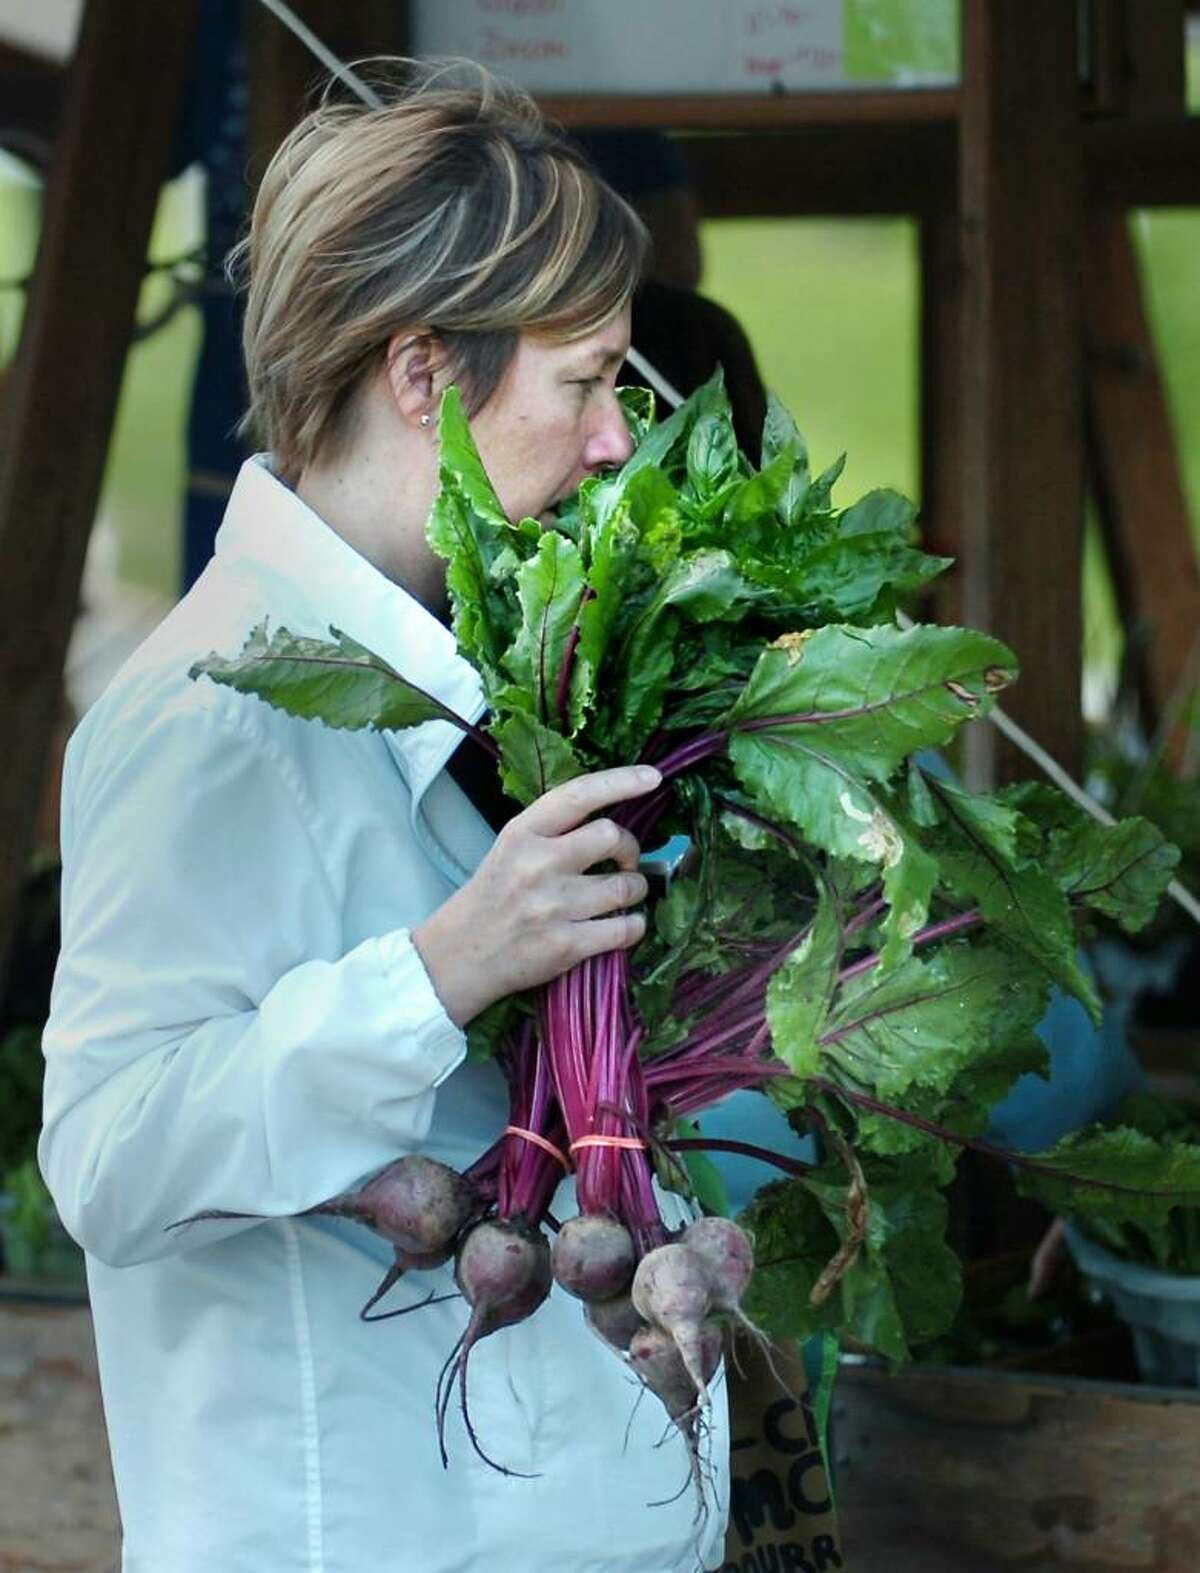 Anja Vaisanen of Greenwich checks the freshness of the beets she was purchasing from Gazy Brothers Farm of Oxford, Conn., by smelling them during the opening day of the Greenwich Farmers Market in the Horseneck public parking lot, Greenwich, Saturday morning, May 15, 2010.